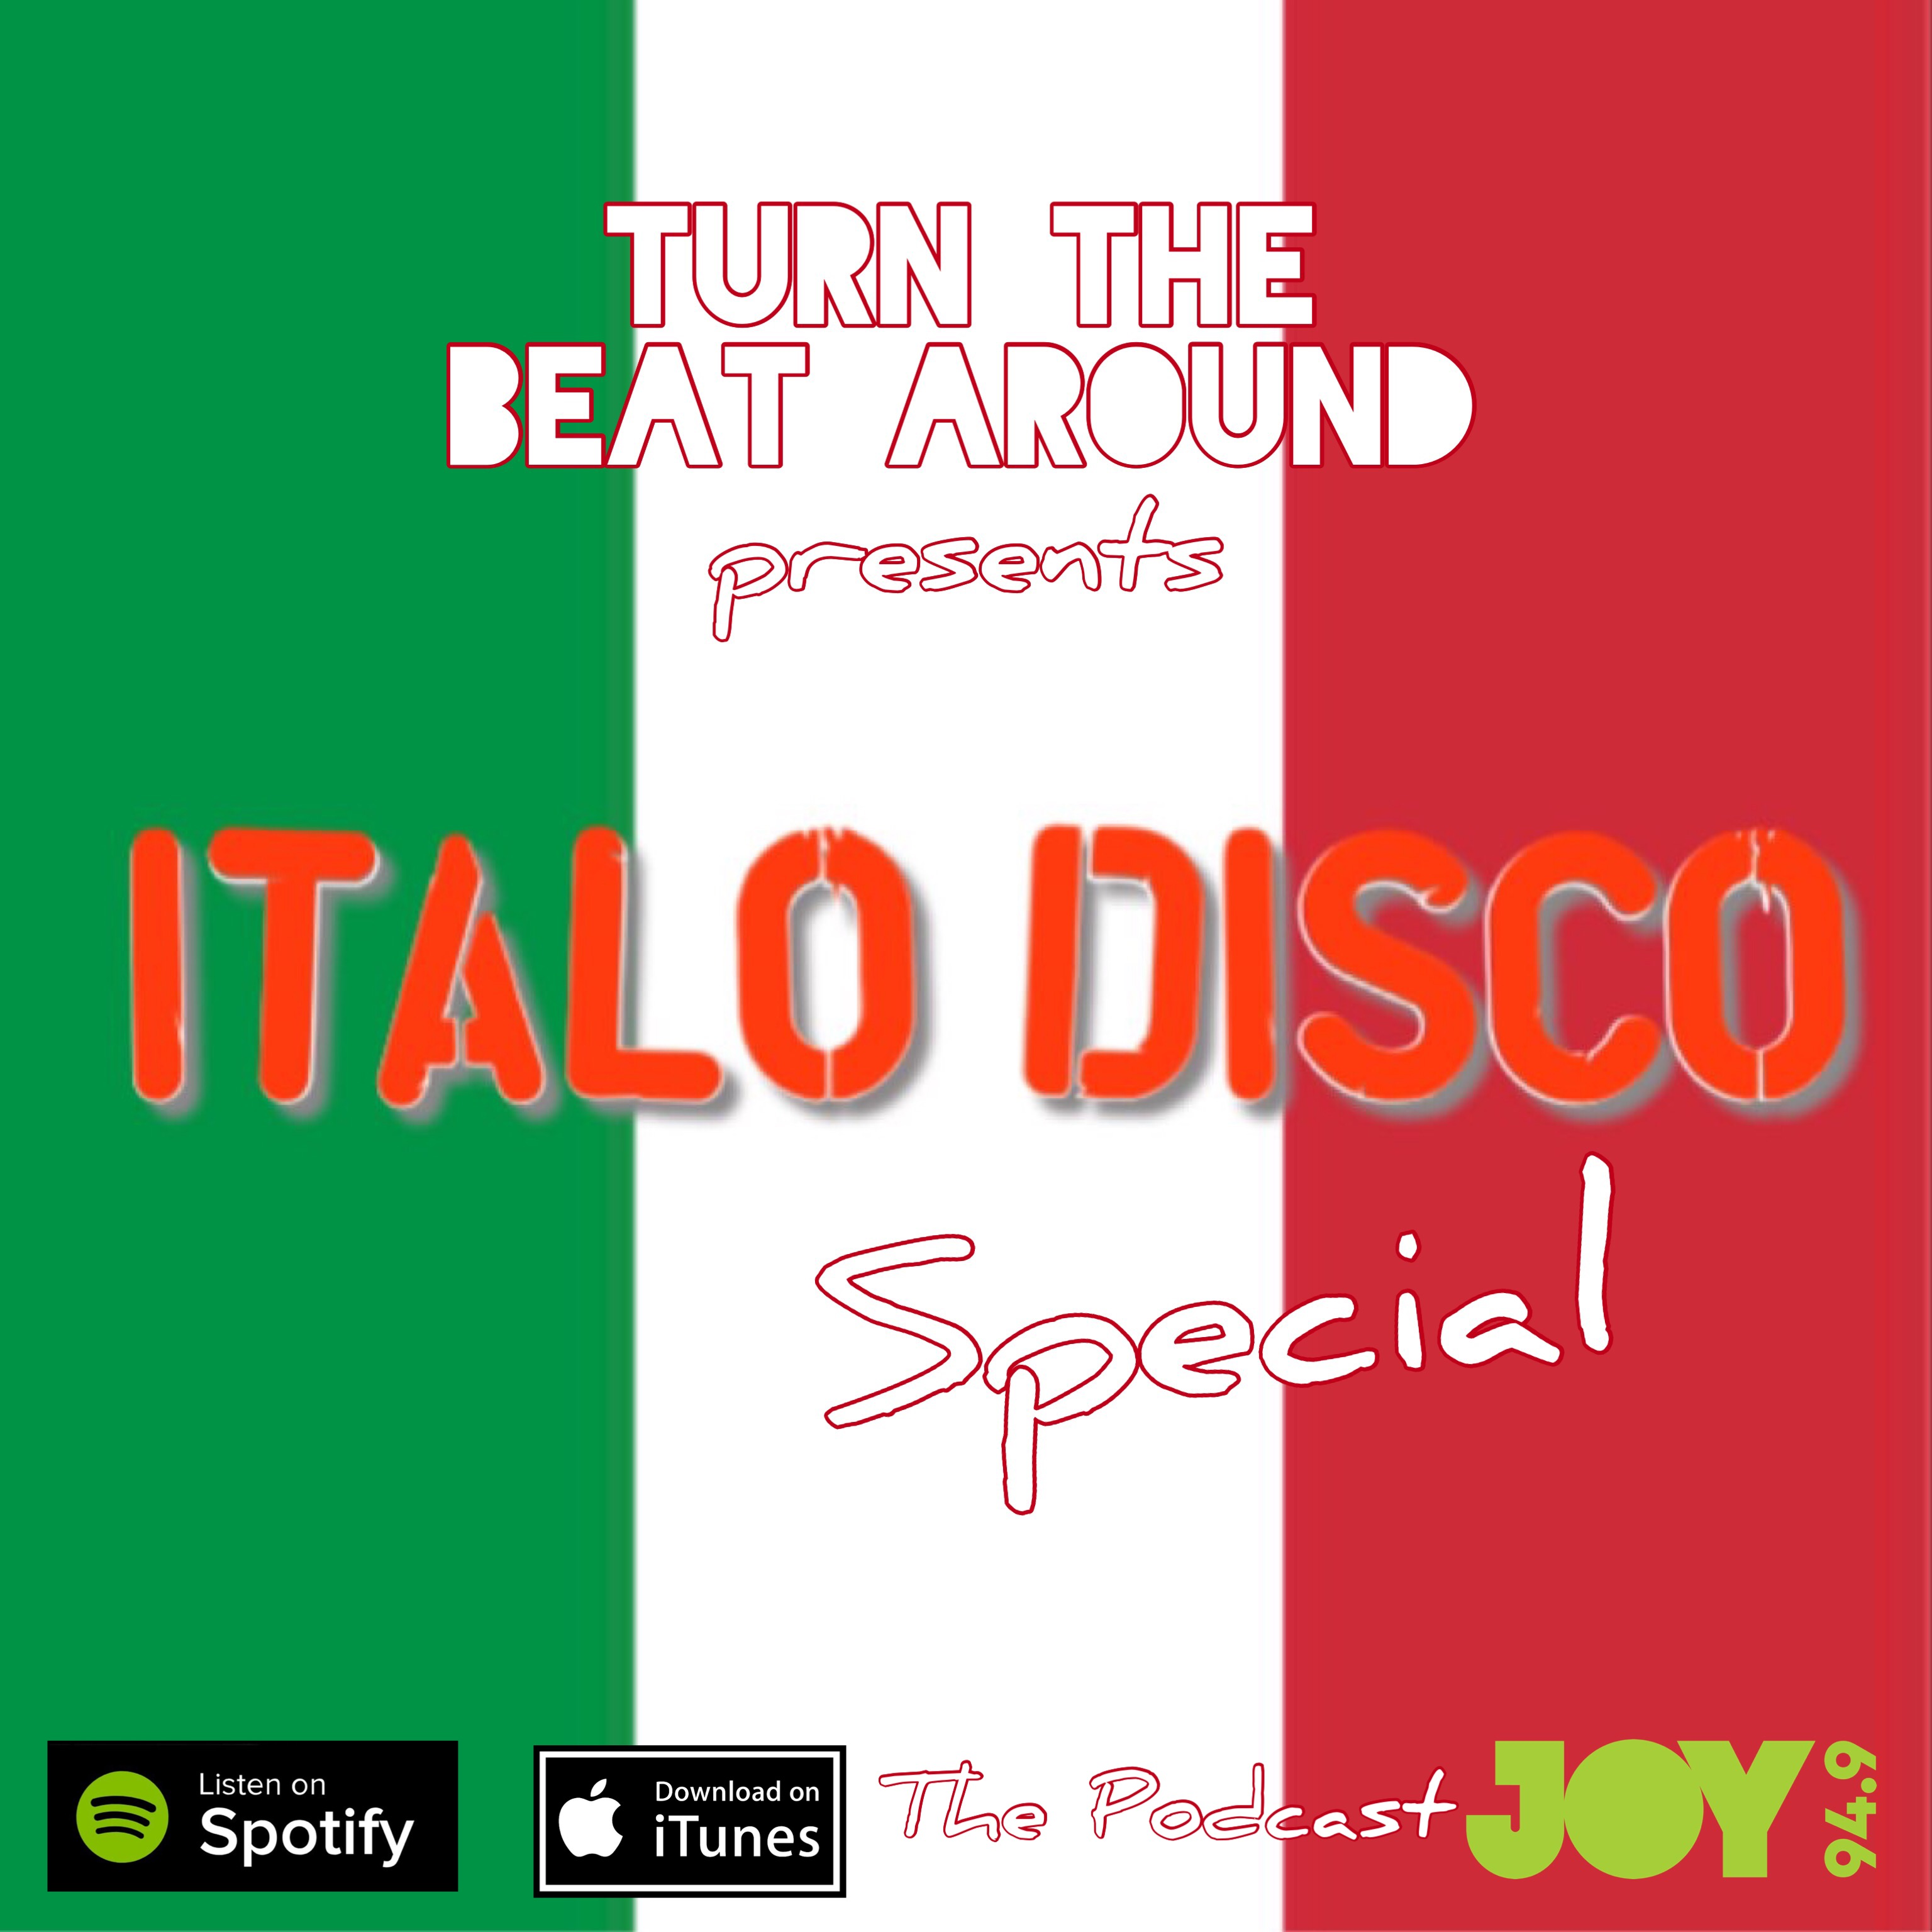 Italo Disco - The Podcast PT1 | Turn the Beat Around